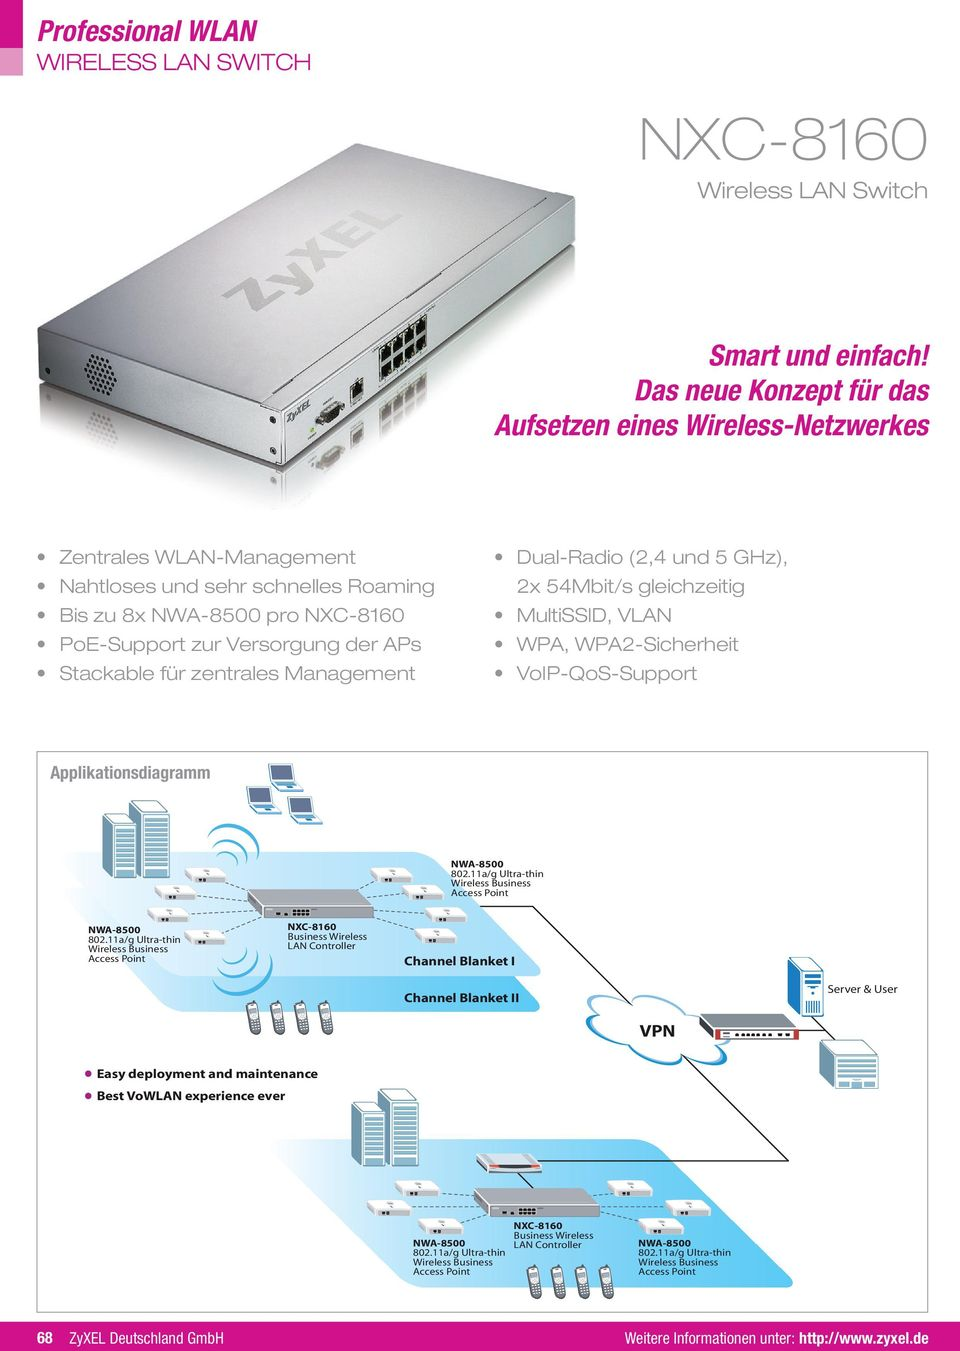 Dual-Radio (2,4 und 5 GHz), 2x 54Mbit/s gleichzeitig MultiSSID, VLAN WPA, WPA2- VoIP-QoS-Support Applikationsdiagramm 802.11a/g Ultra-thin Wireless Business Access Point 802.